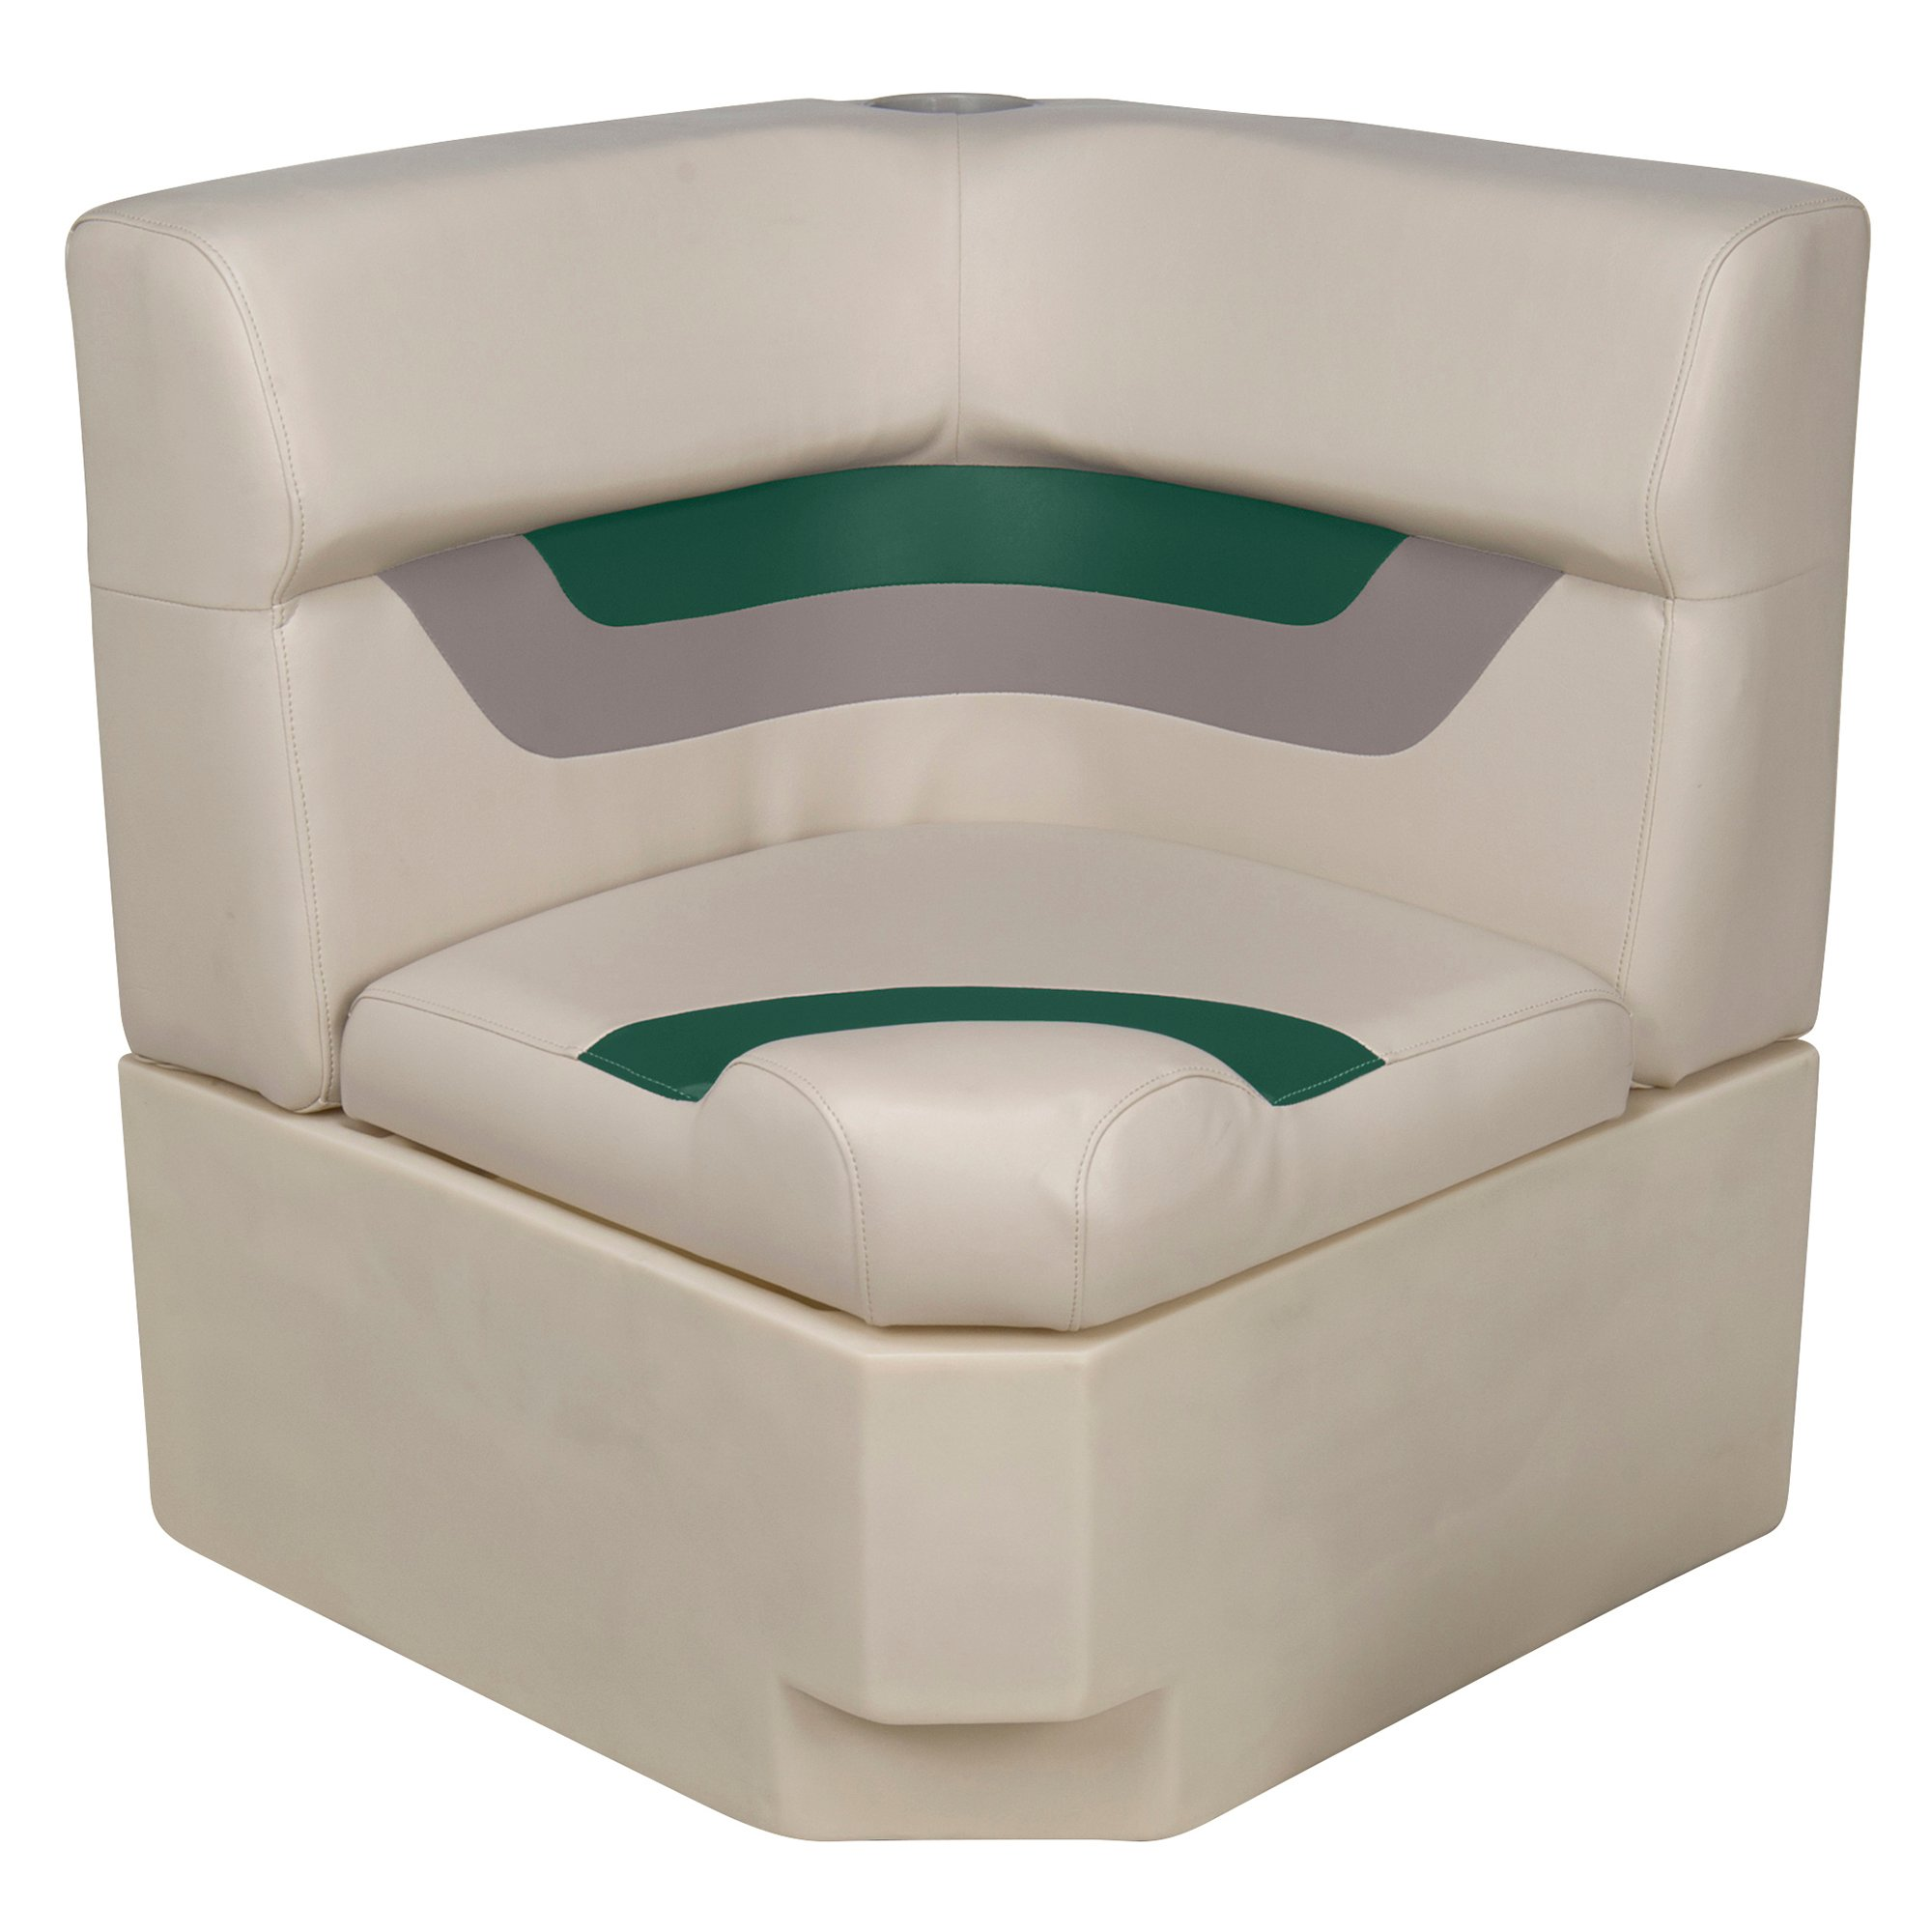 Toonmate Designer Pontoon Corner Section Seat - TOP ONLY